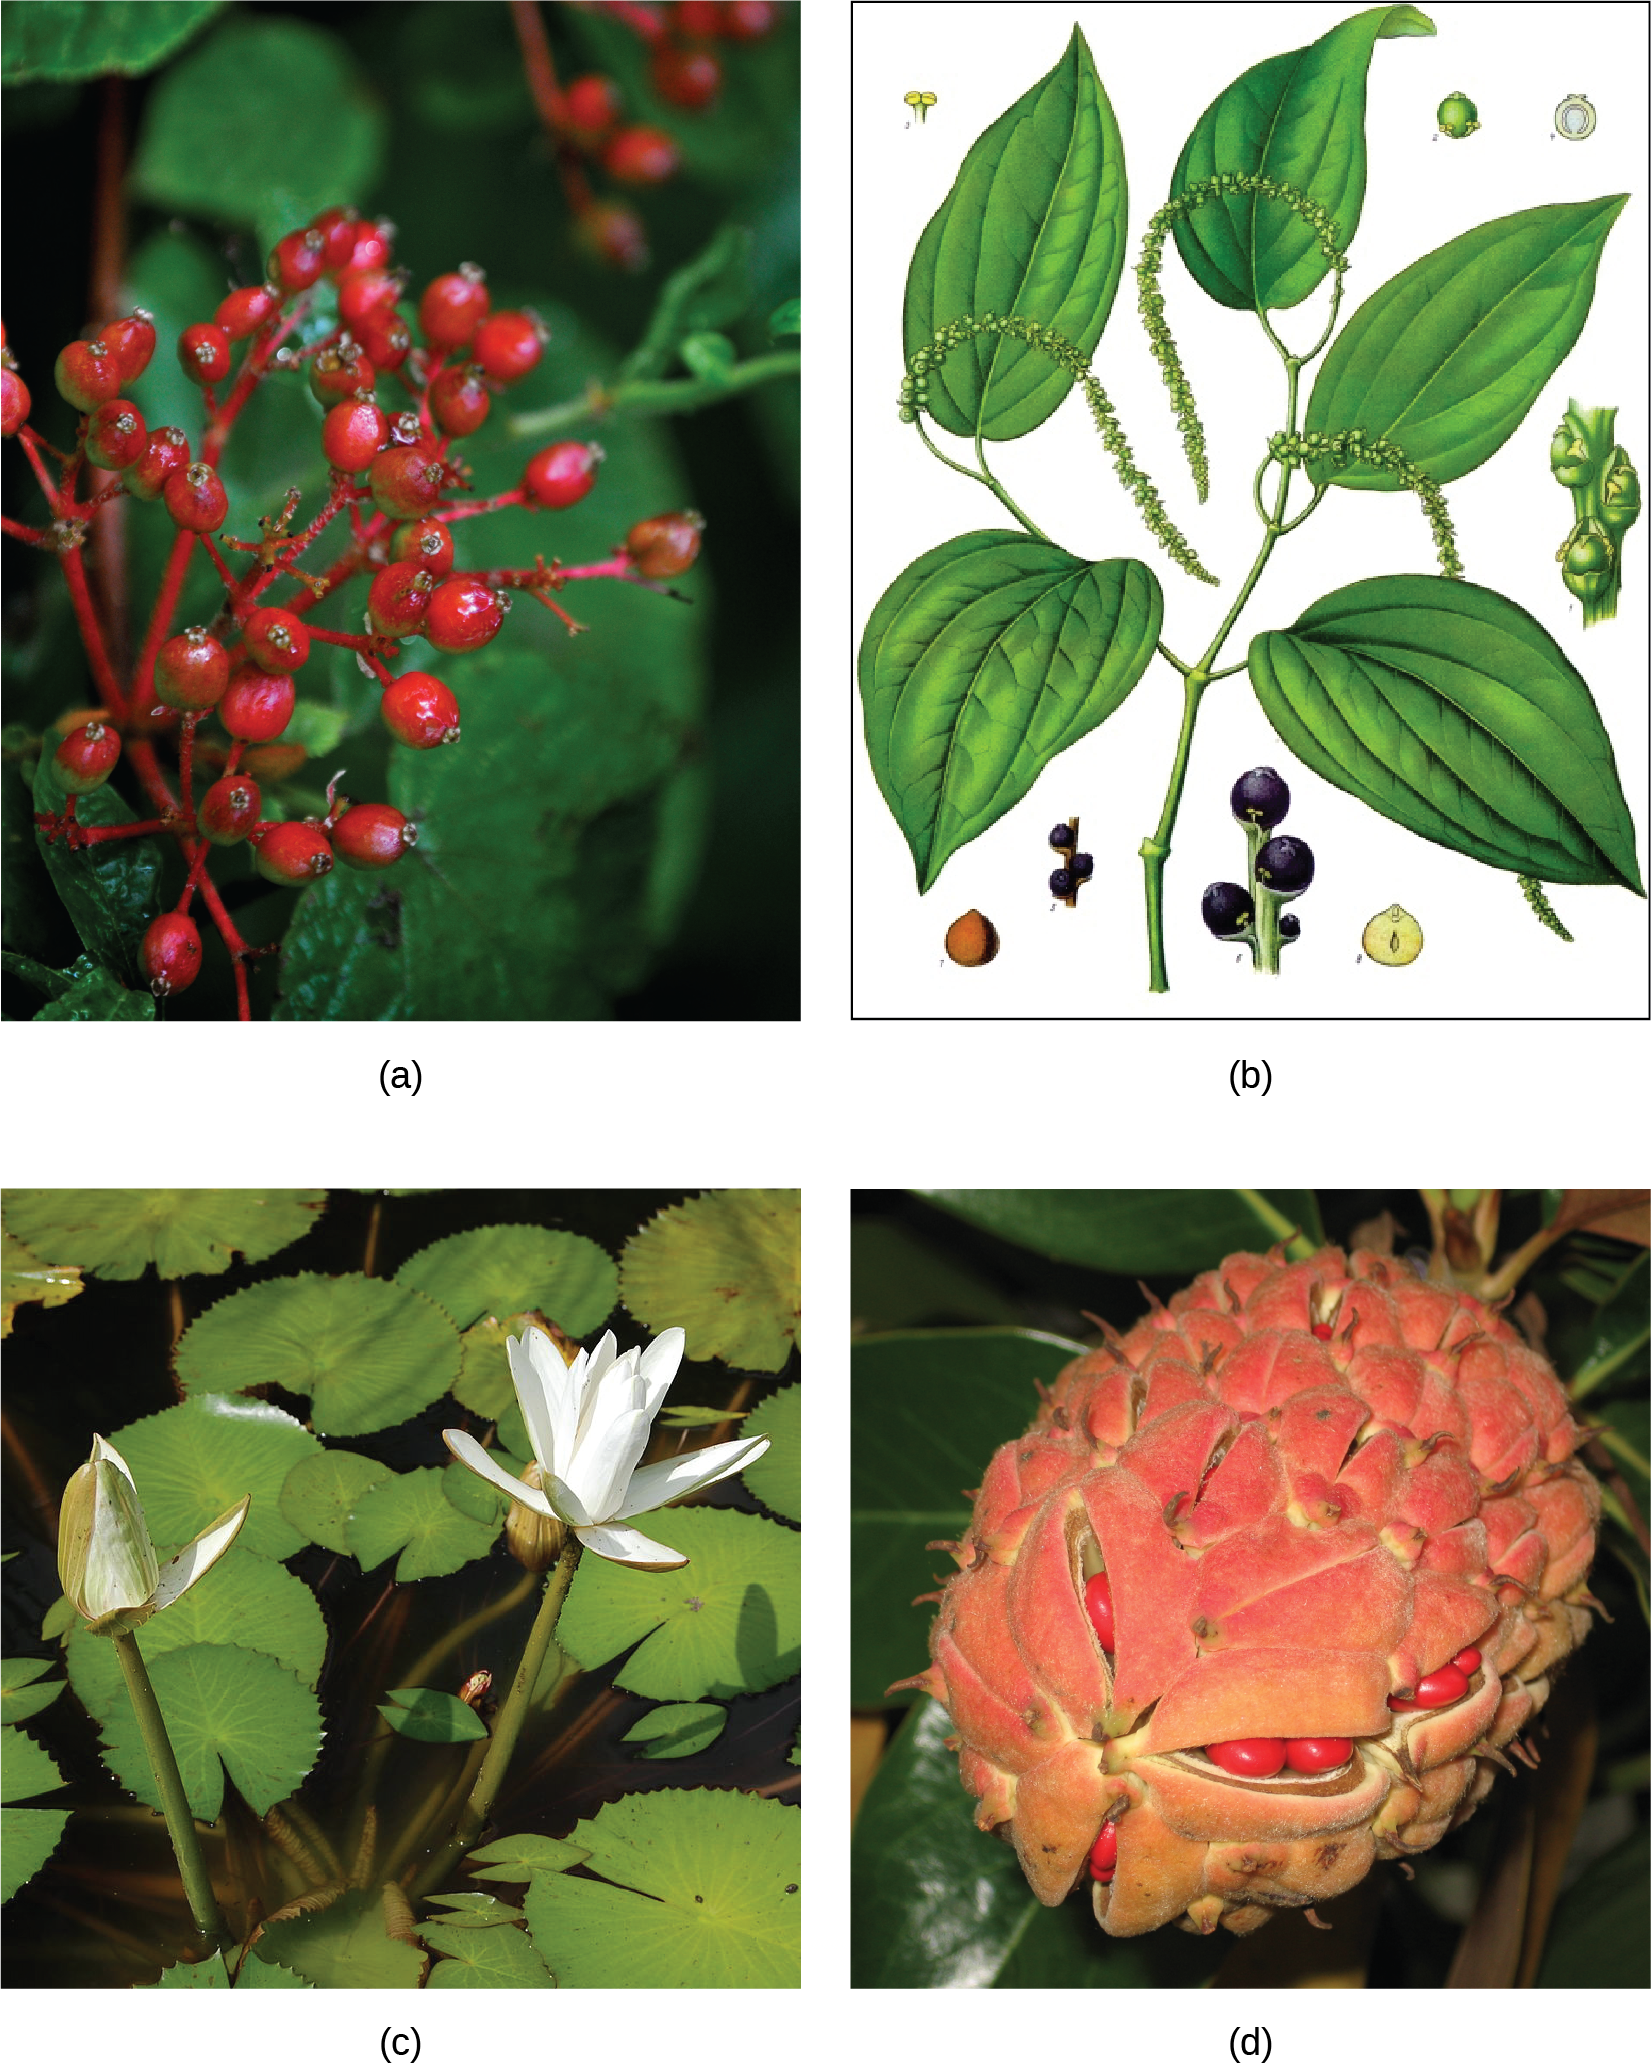 Photo A depicts a common spicebush plant with bright red berries growing at the tips of red stems. Illustration B shows a pepper plant with teardrop-shaped leaves and tiny flowers clustered on a long stem. Photo C shows lotus plants with broad, circular leaves and white flowers growing in water. Photo D shows red magnolia seeds clustered in an egg-shaped pink sac scattered with small, brown spikes.